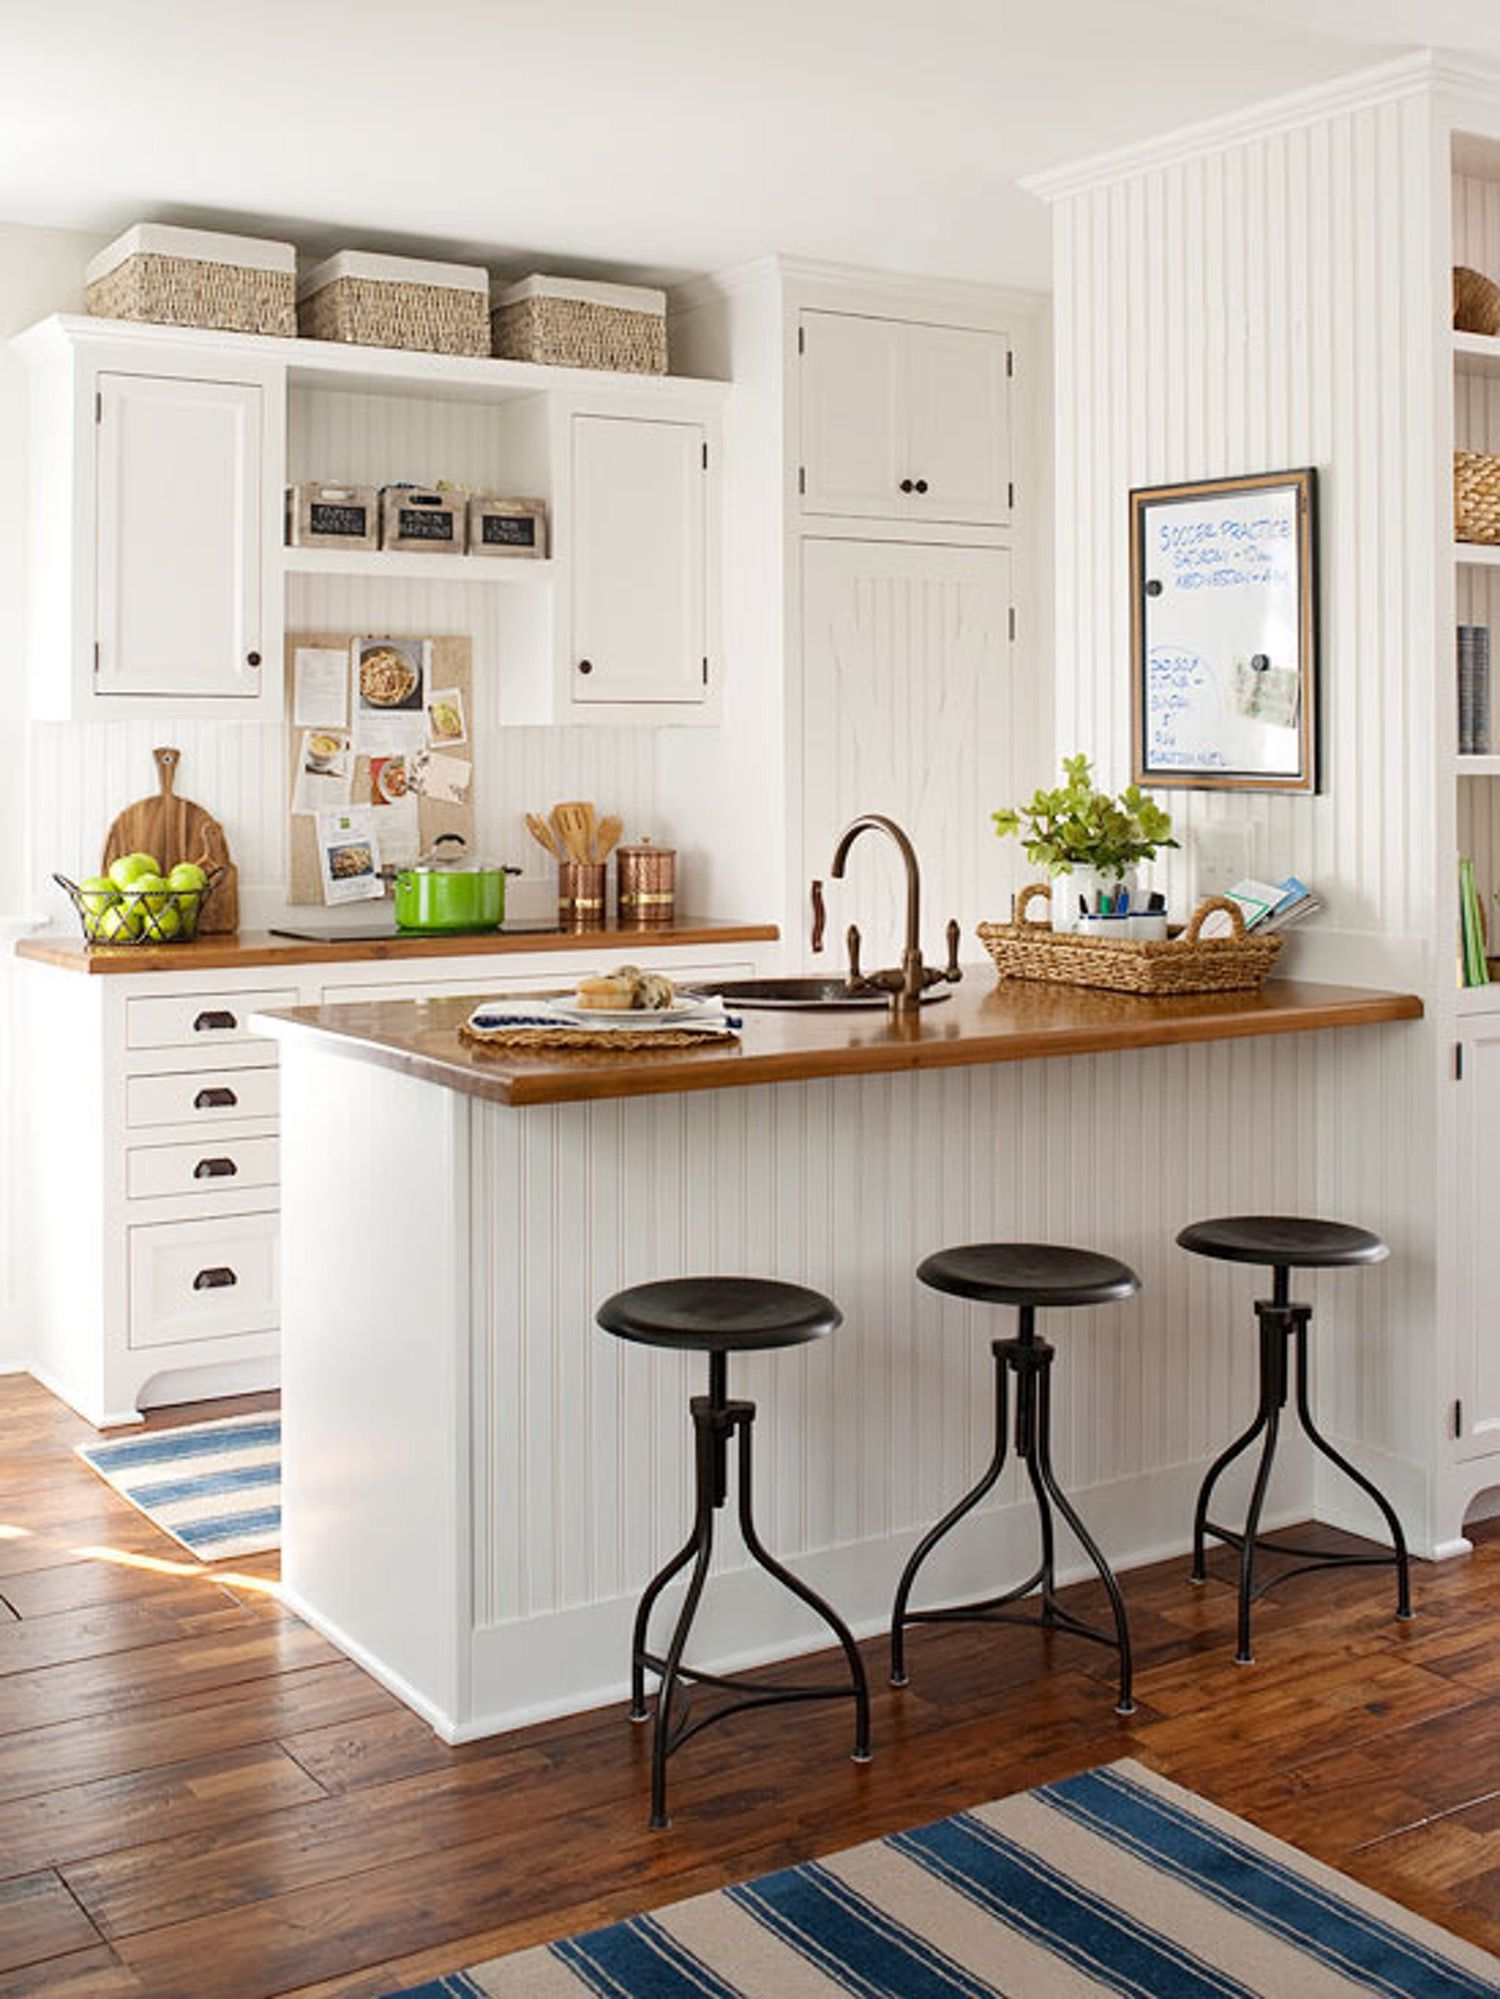 7 things to do with that awkward space above the cabinets small kitchen storage above kitchen on kitchen organization cabinet id=36575